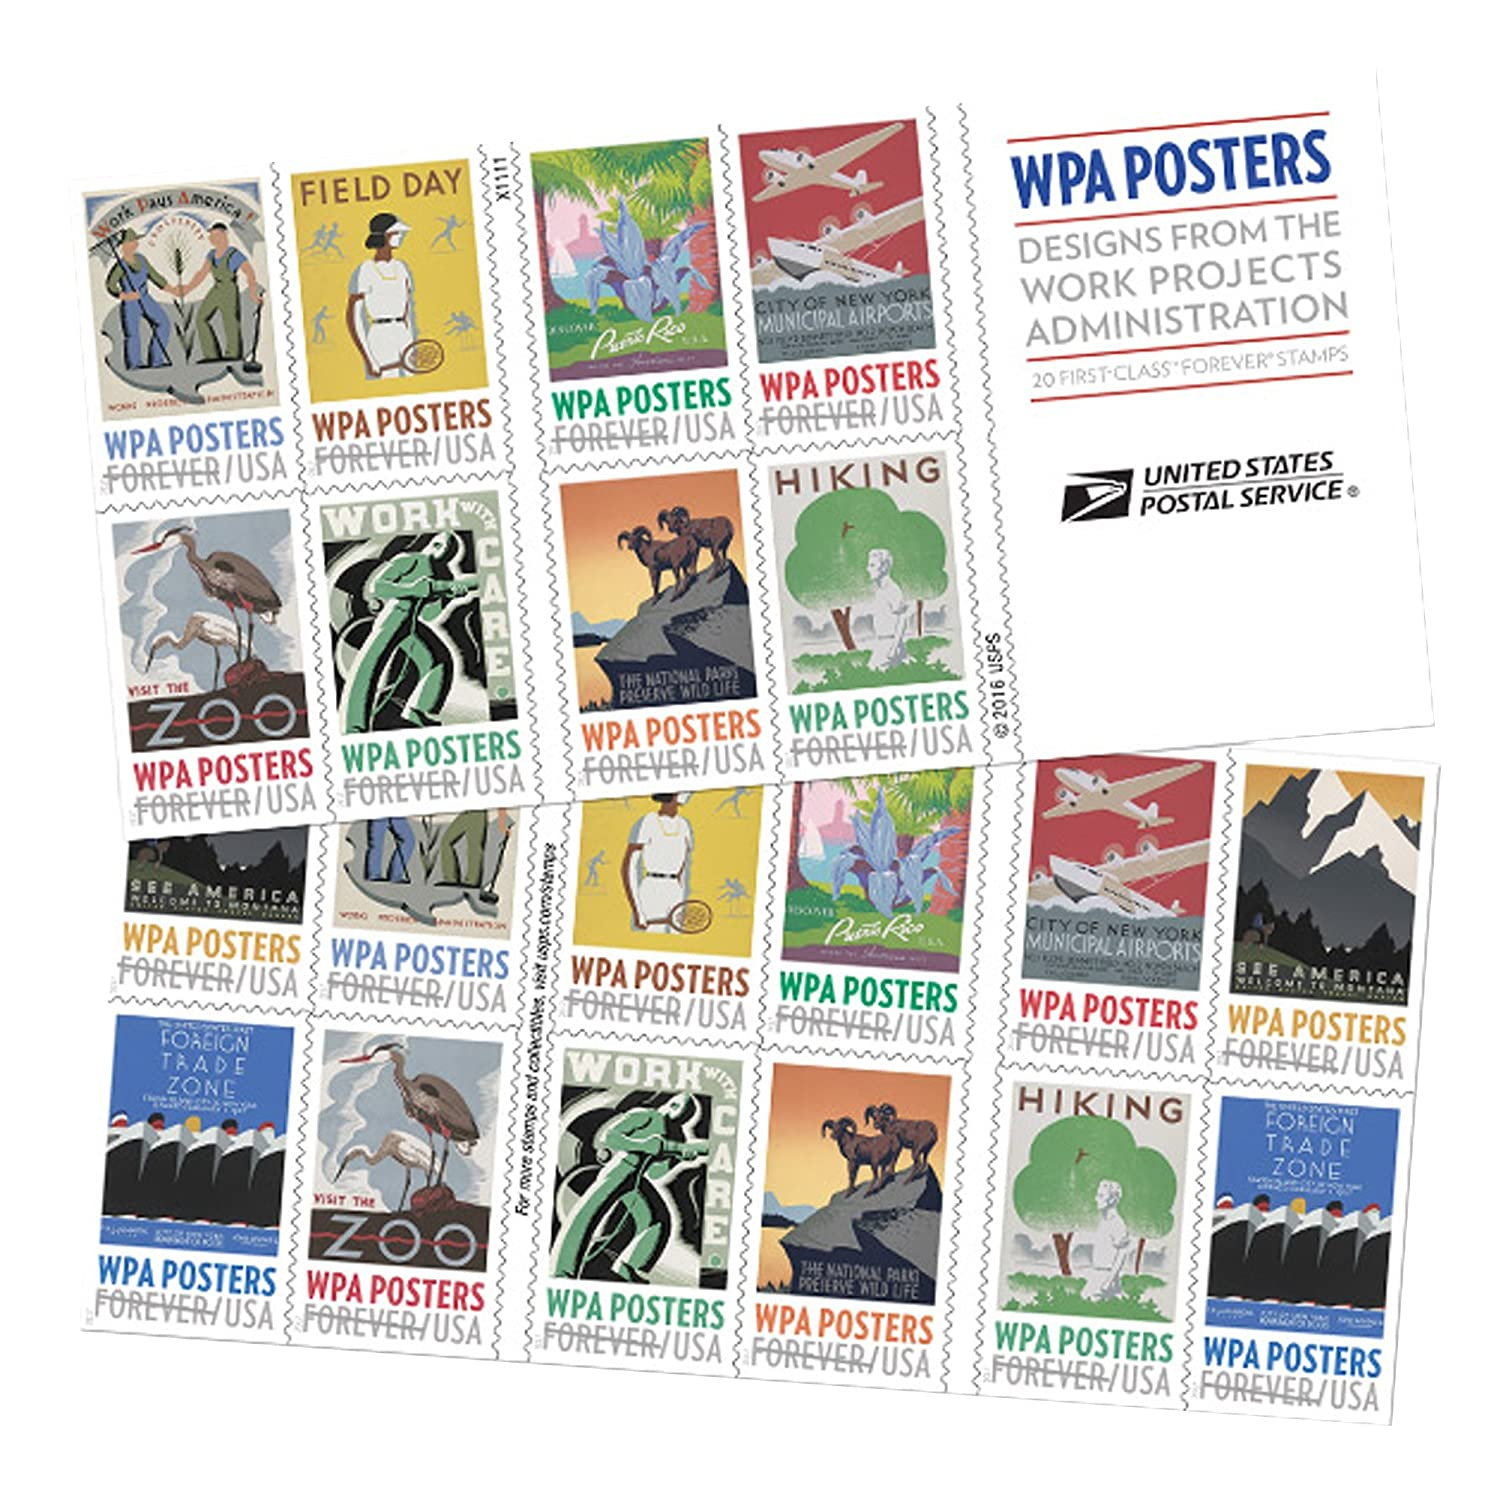 1 book of 20 stamps WPA Posters book of 20 Forever USPS Postage Stamp Work Projects Administration